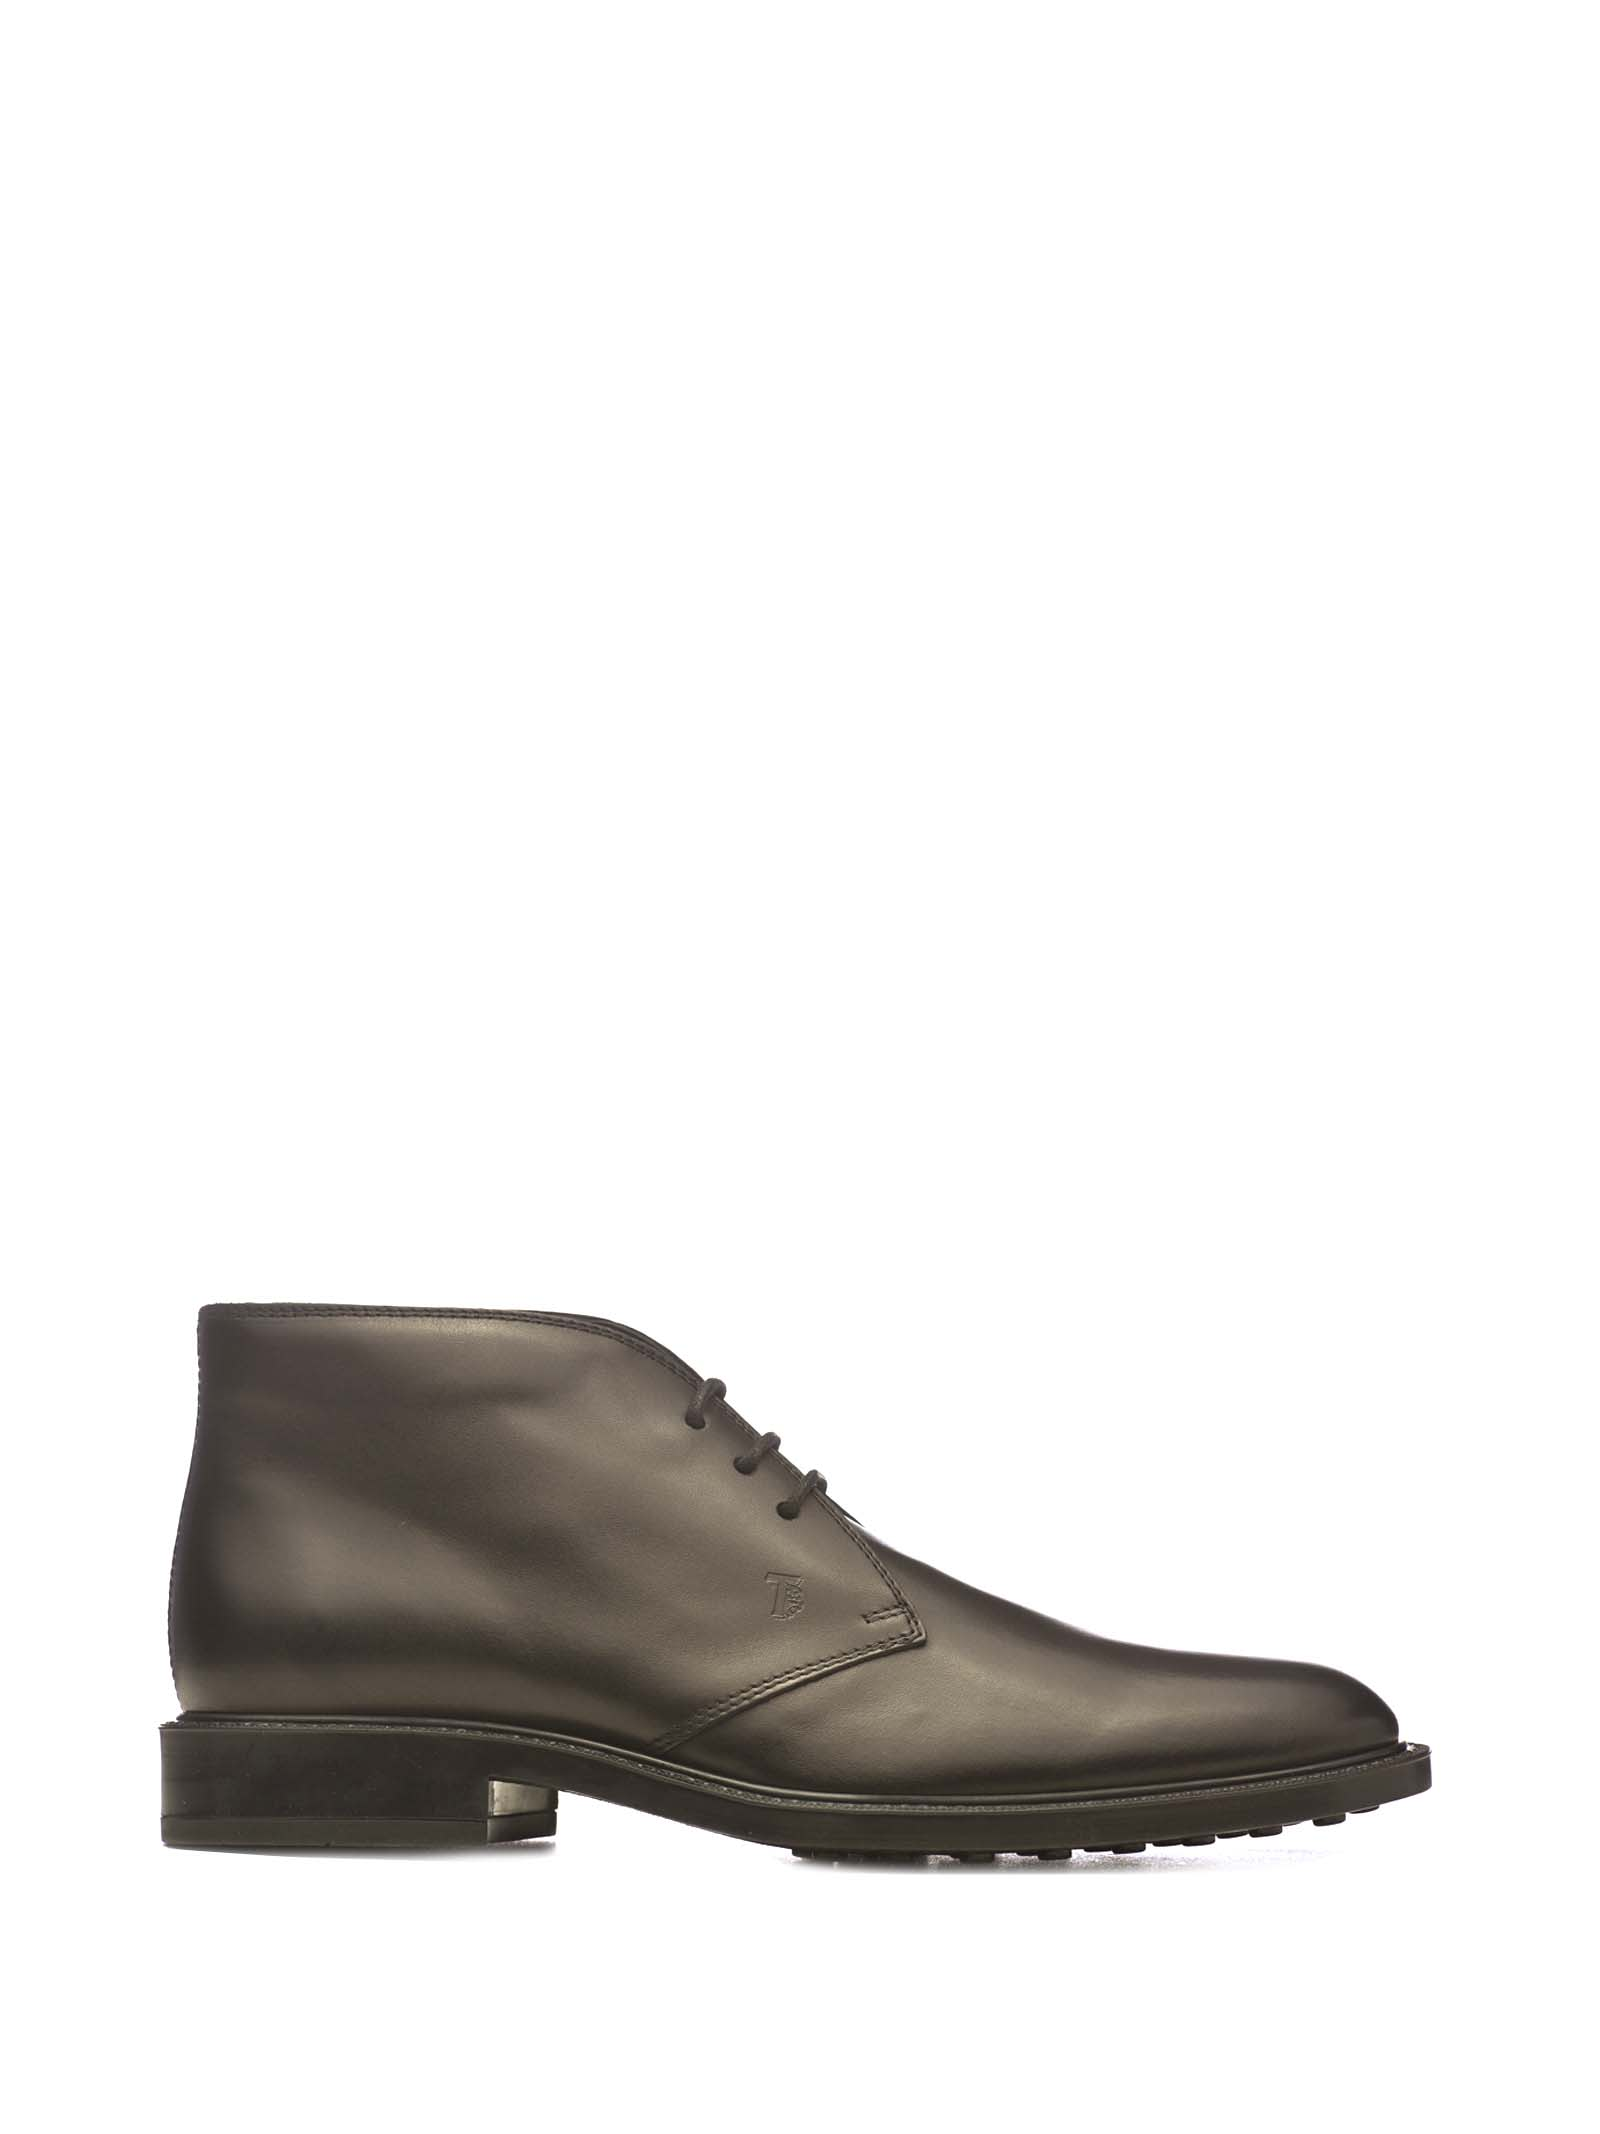 Tods Tods Oxford Shoe Boots